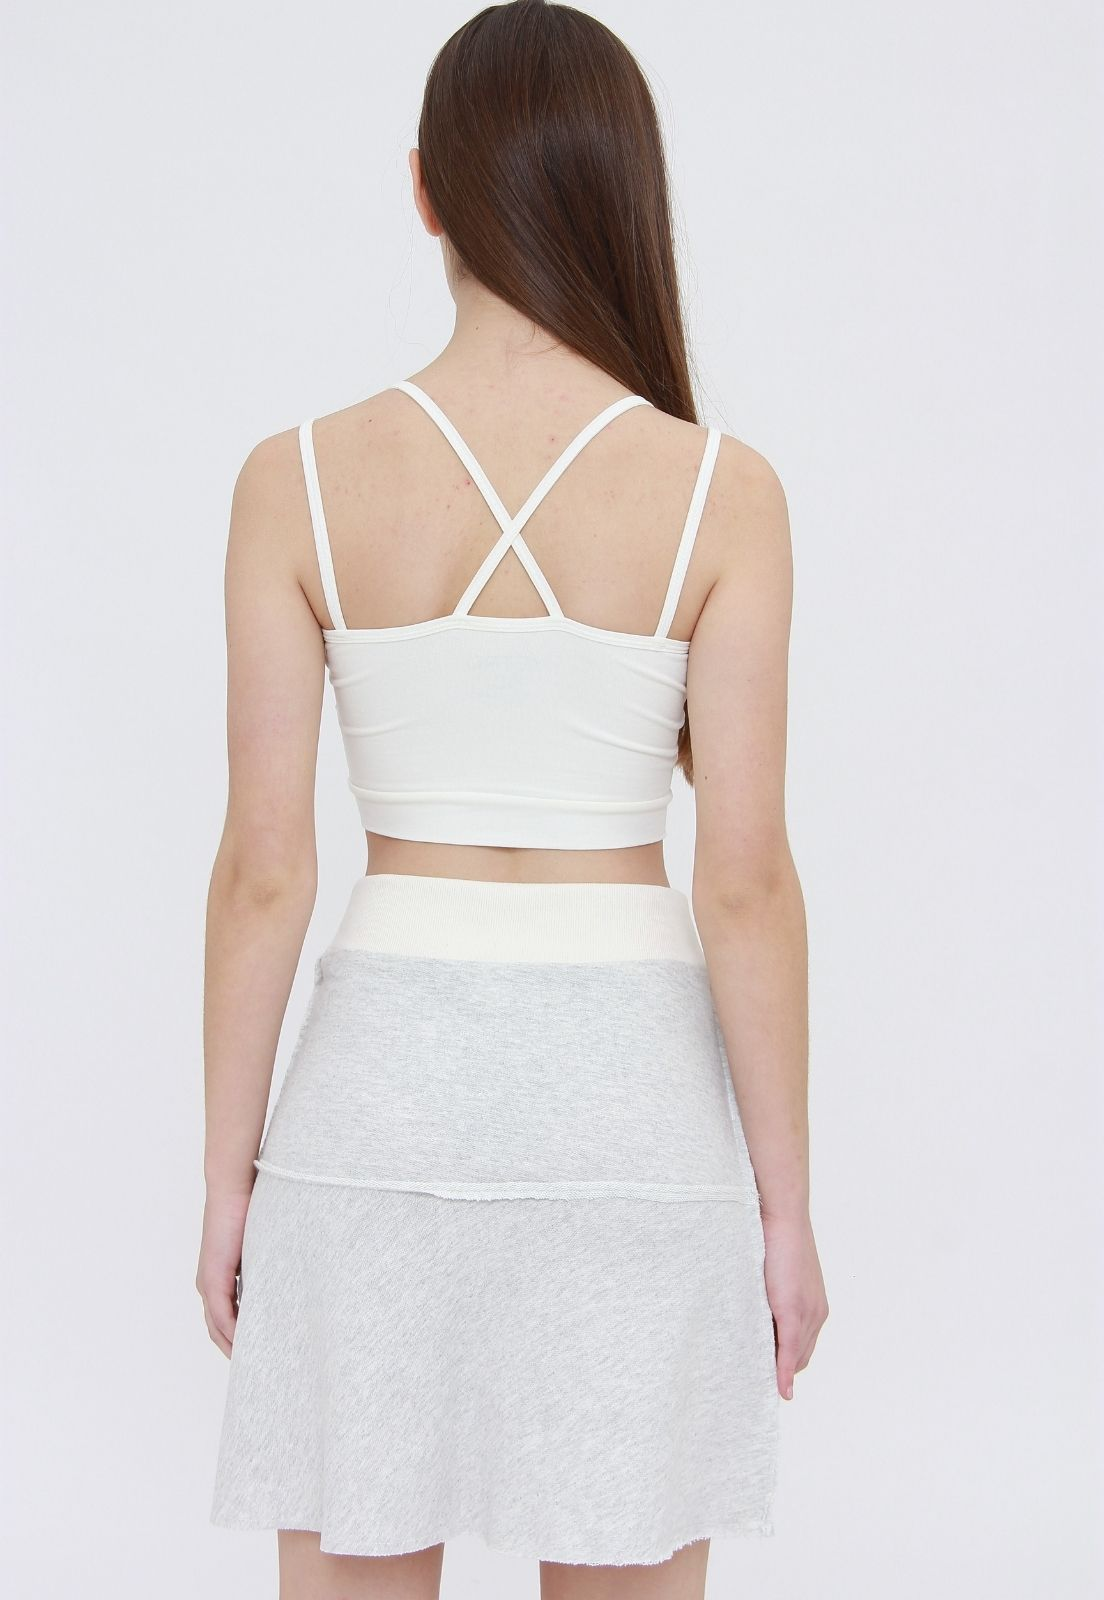 Top Cropped Off White  - Metro & Co.